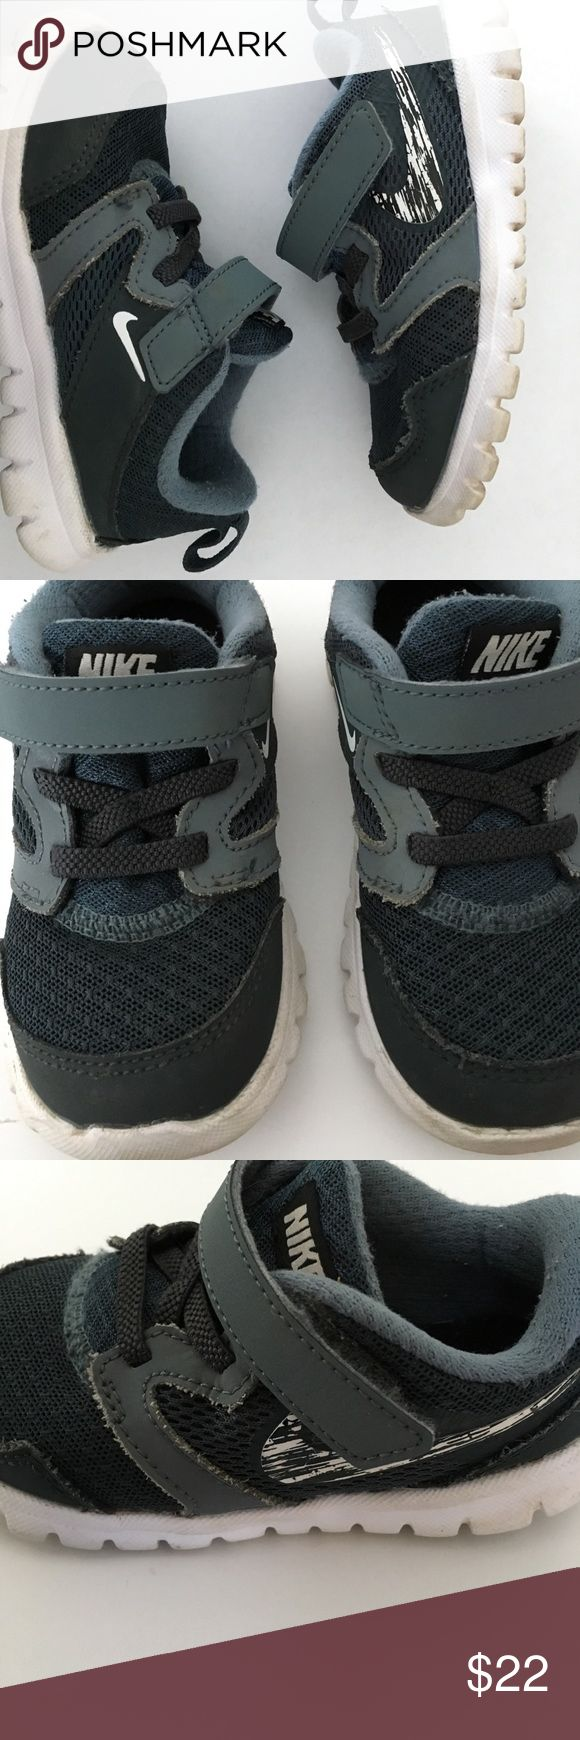 Nike Flex Experience- Toddler Sneakers Nike Flex Experience - Toddler Sneaker in blue, gray and black. Velcro closure, no need to fuss with ties. Easy on and off. Good condition, lots of life left. Nike Shoes Sneakers